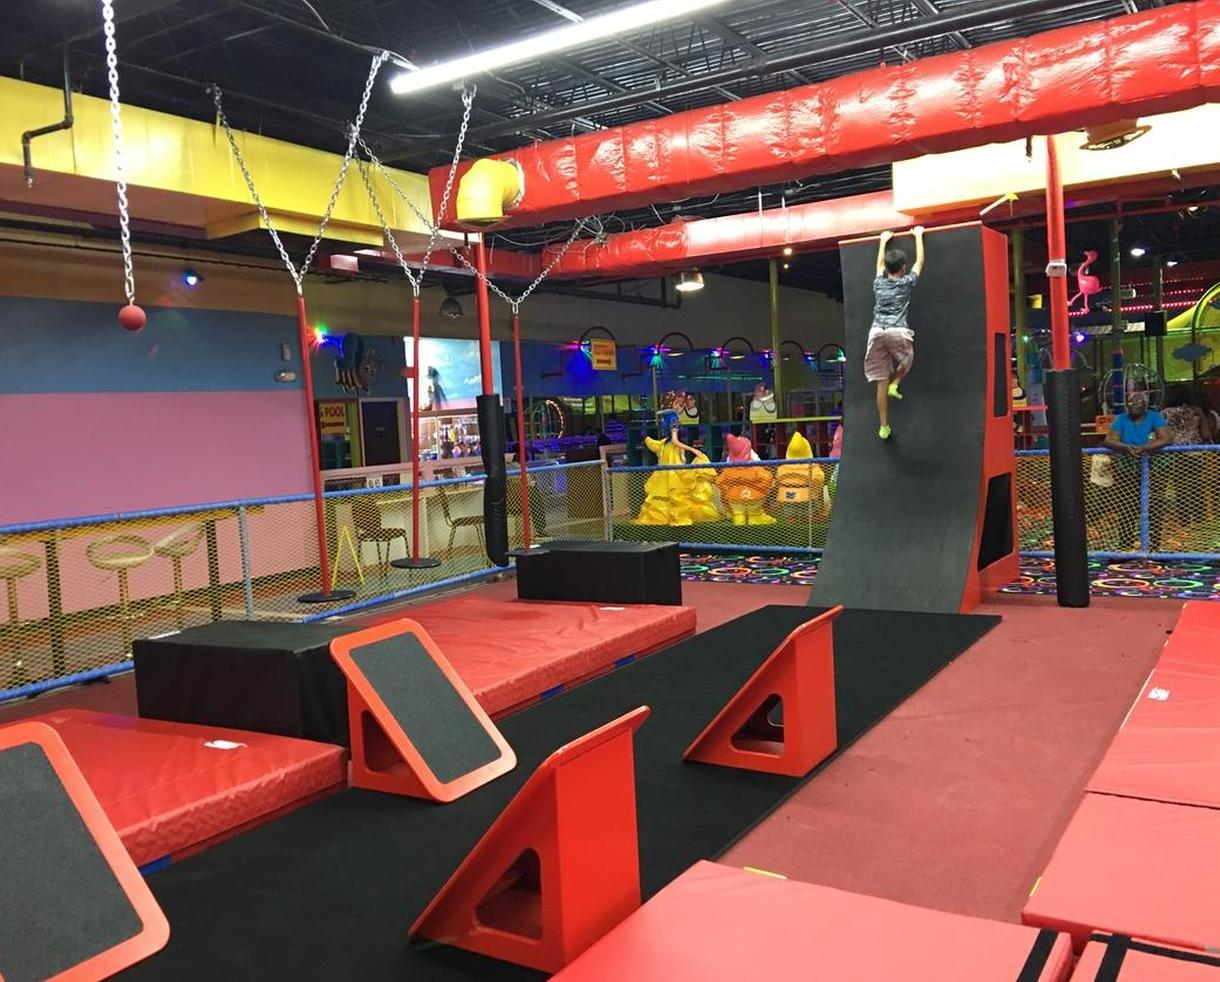 Ninja Obstacle Course Admission at Kid's Paradise